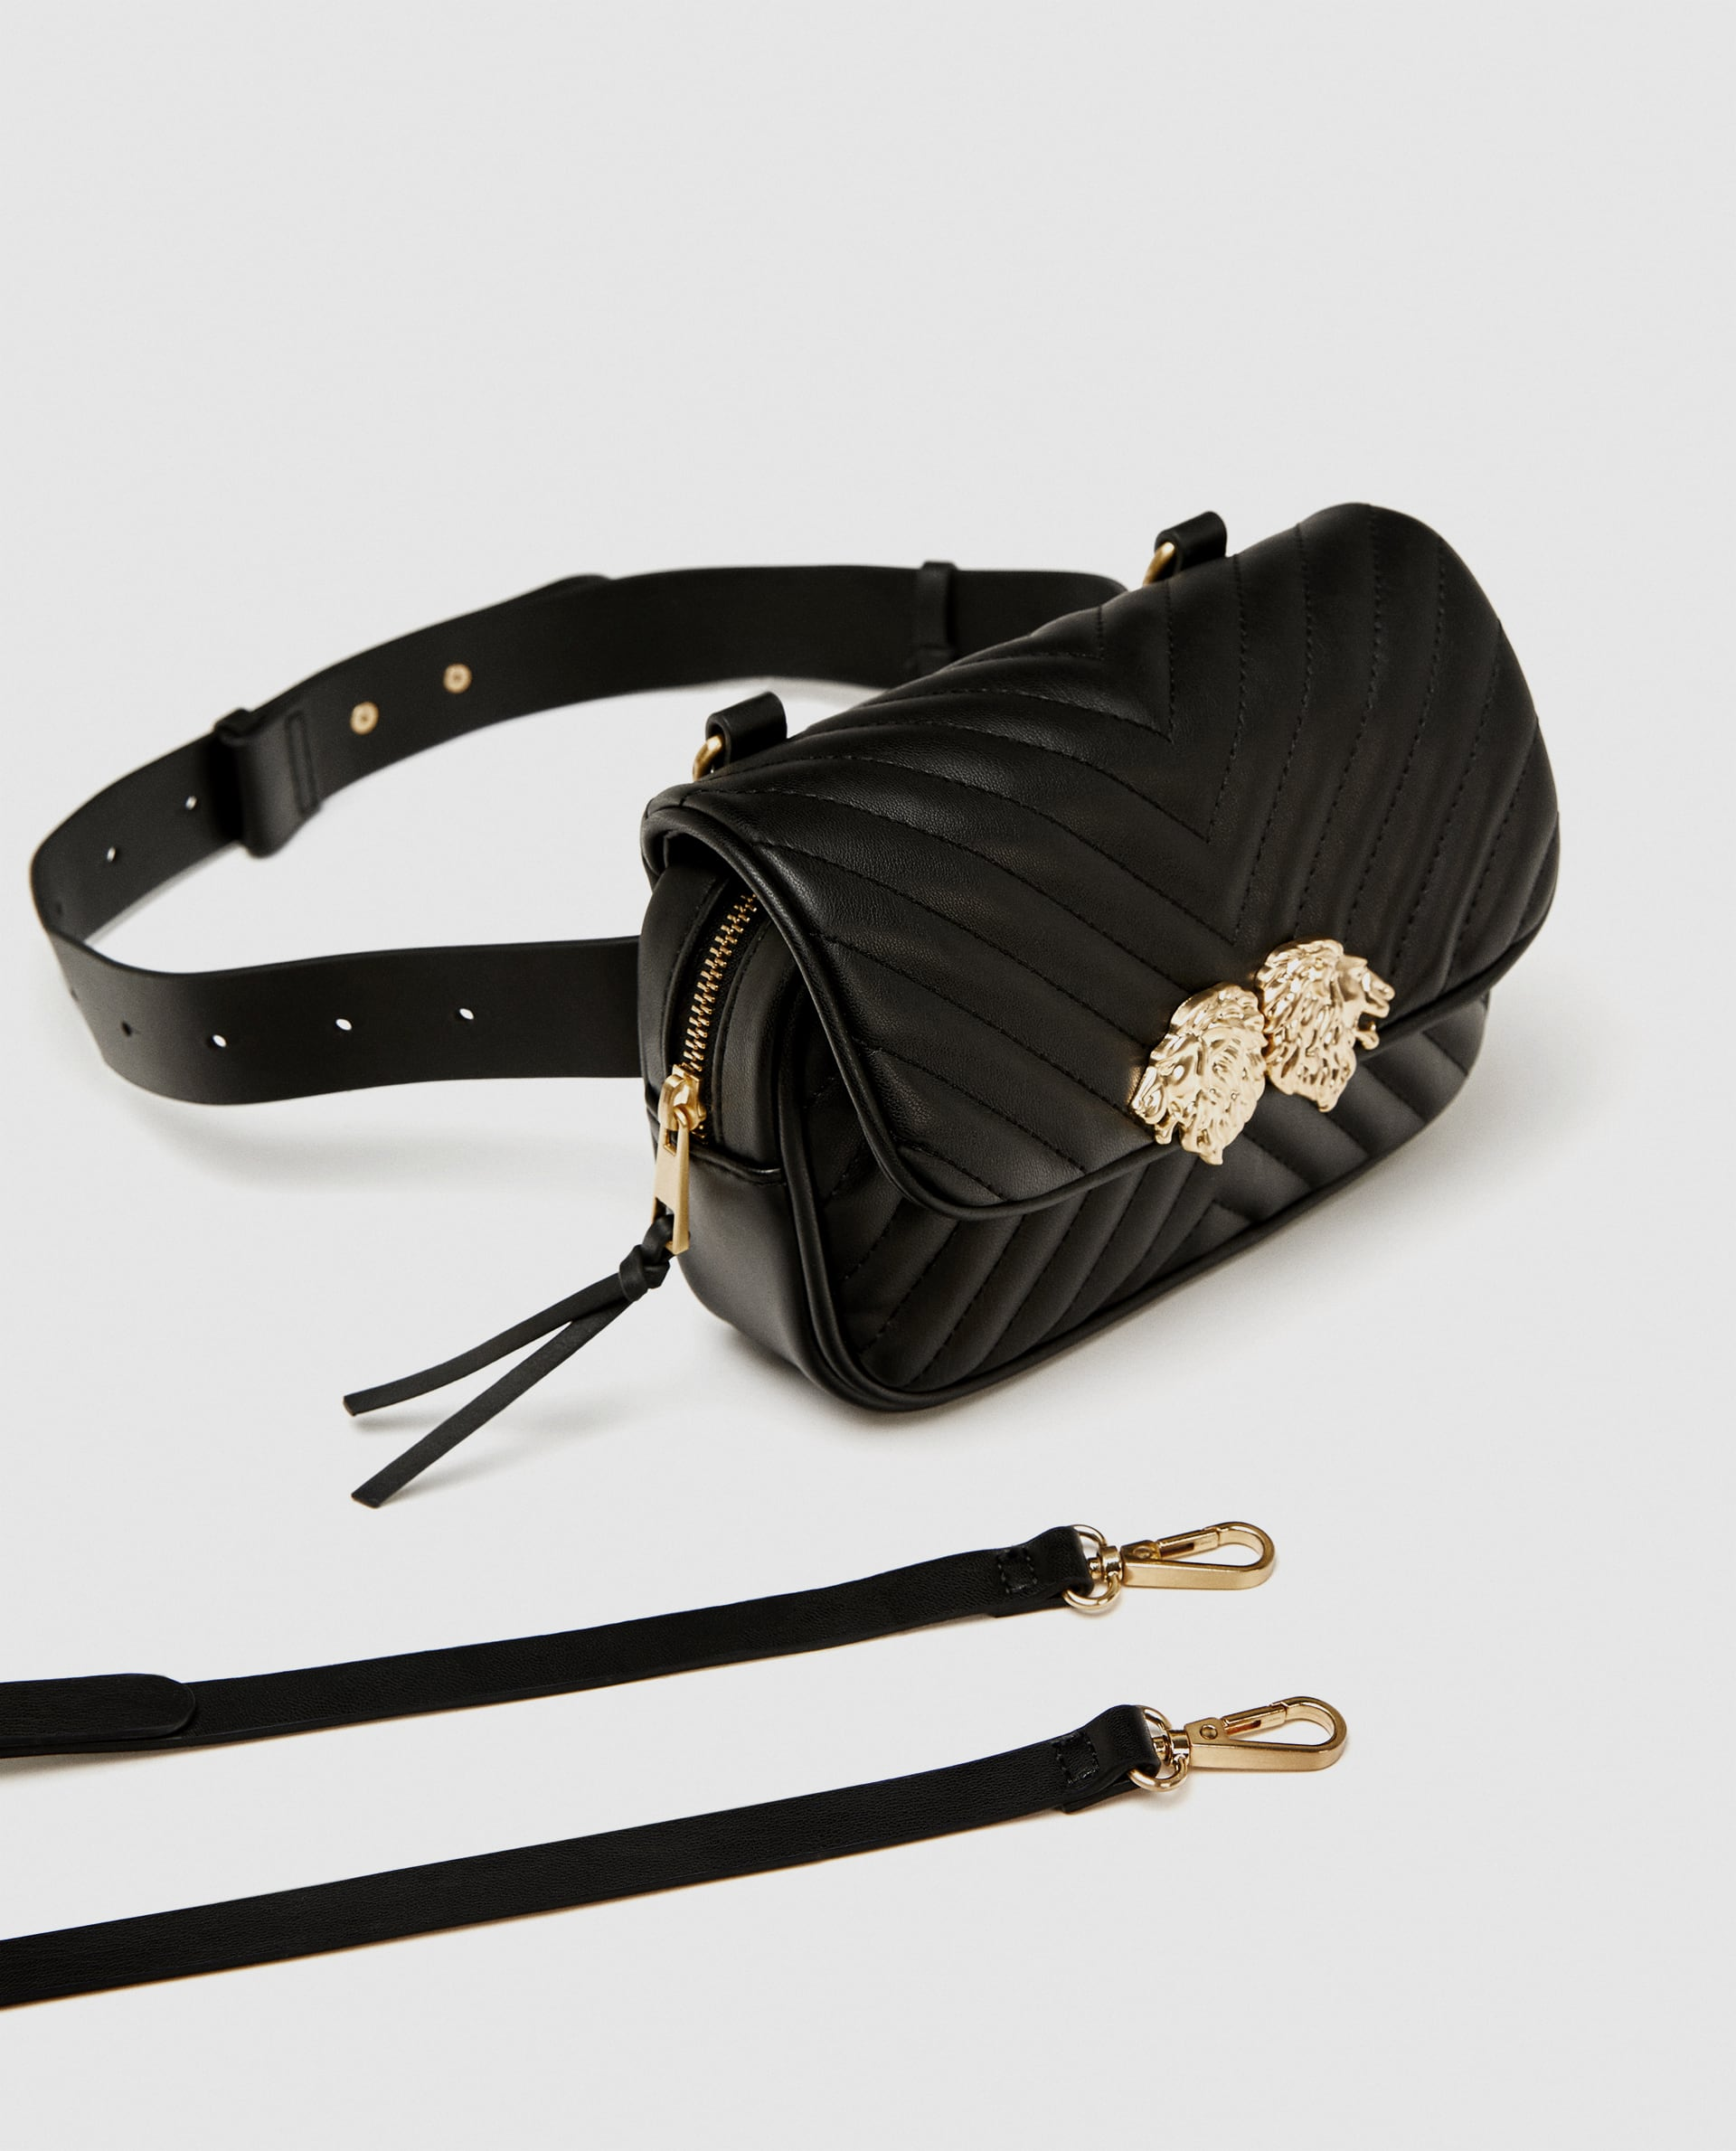 5bdc601c9bc This €30 Zara bag is a dead ringer for a very popular Gucci one | Her.ie